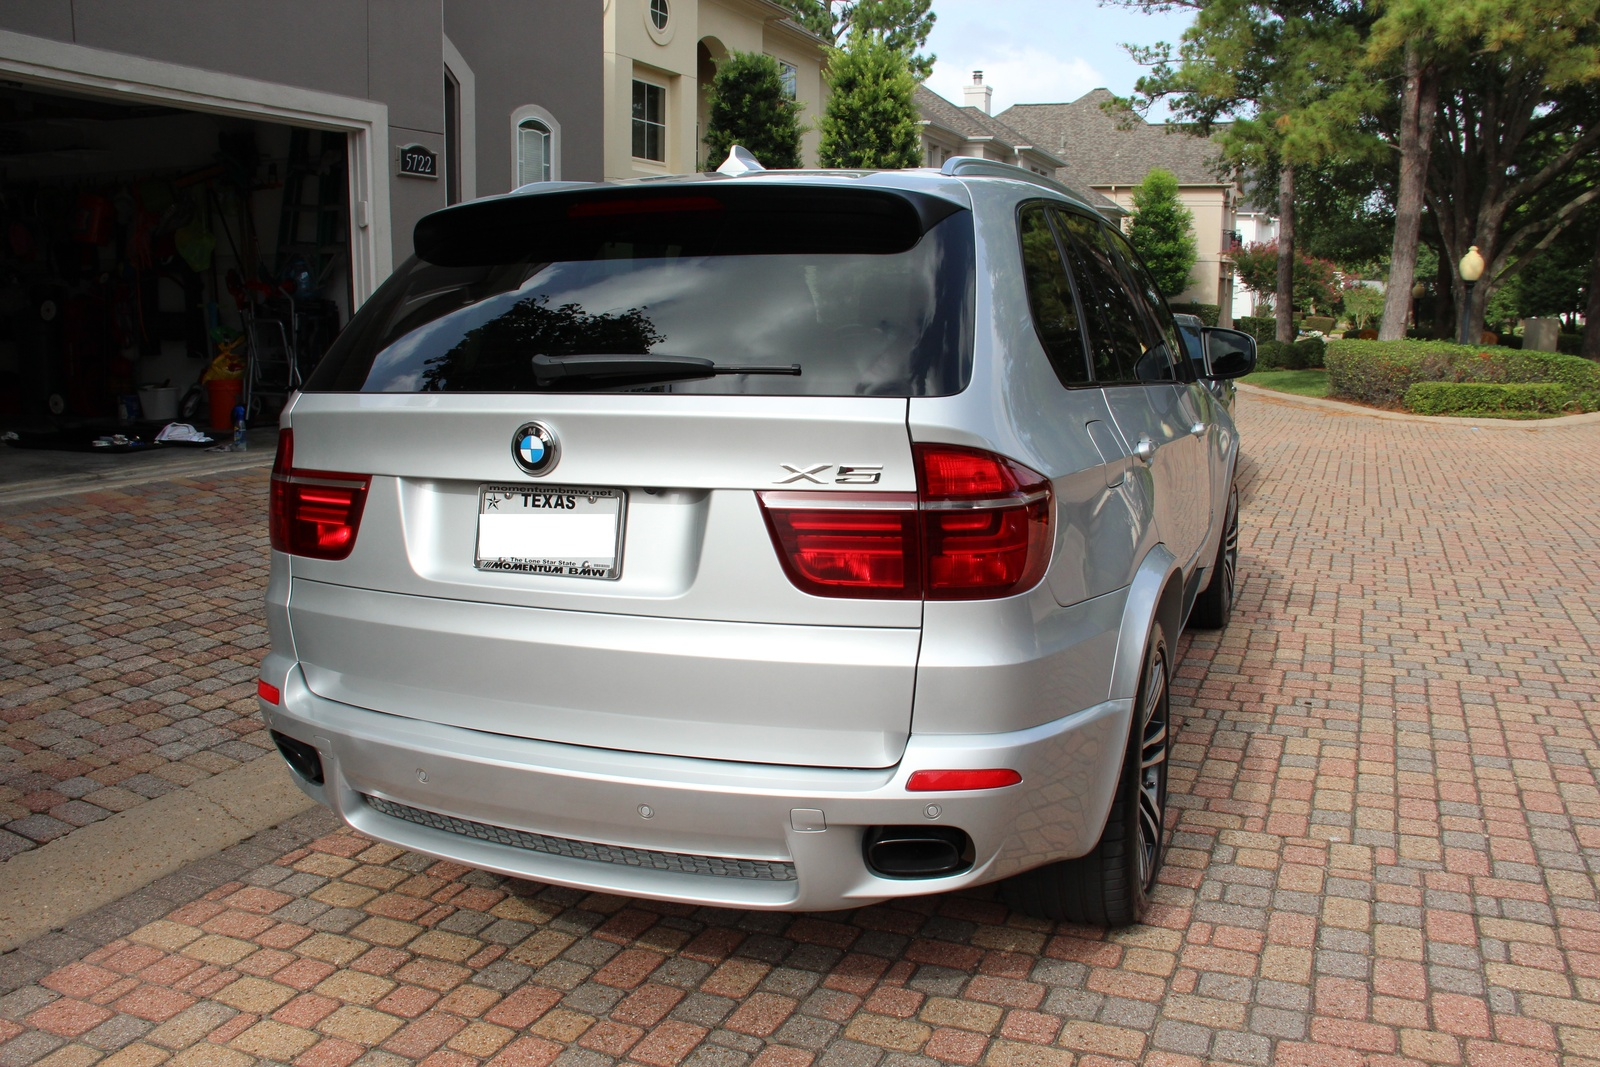 2013 Bmw X6 Overview Cargurus X5 Trailer Wiring Picture Of Xdrive35i Sport Activity Awd Exterior Gallery Worthy